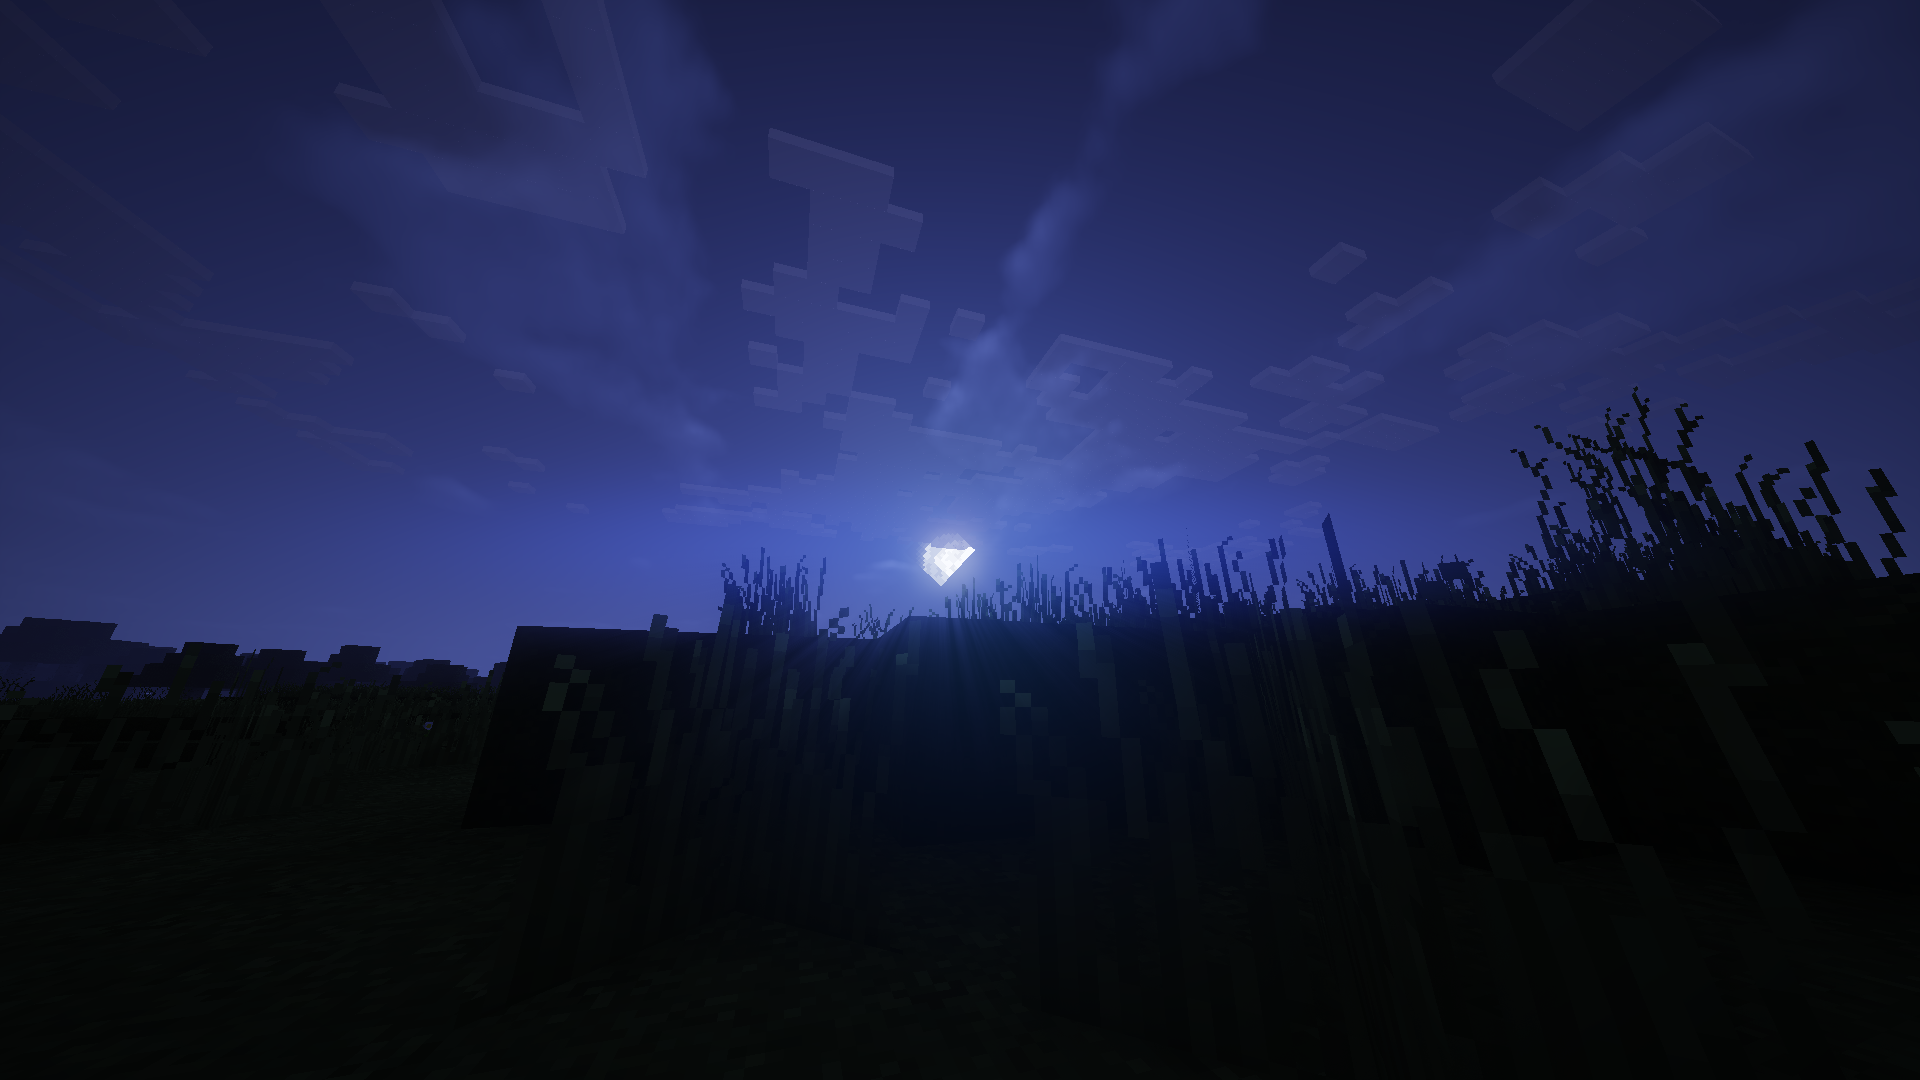 Minecraft Ultra Shaders Wallpapers 1080p Hd 40 Album On Imgur